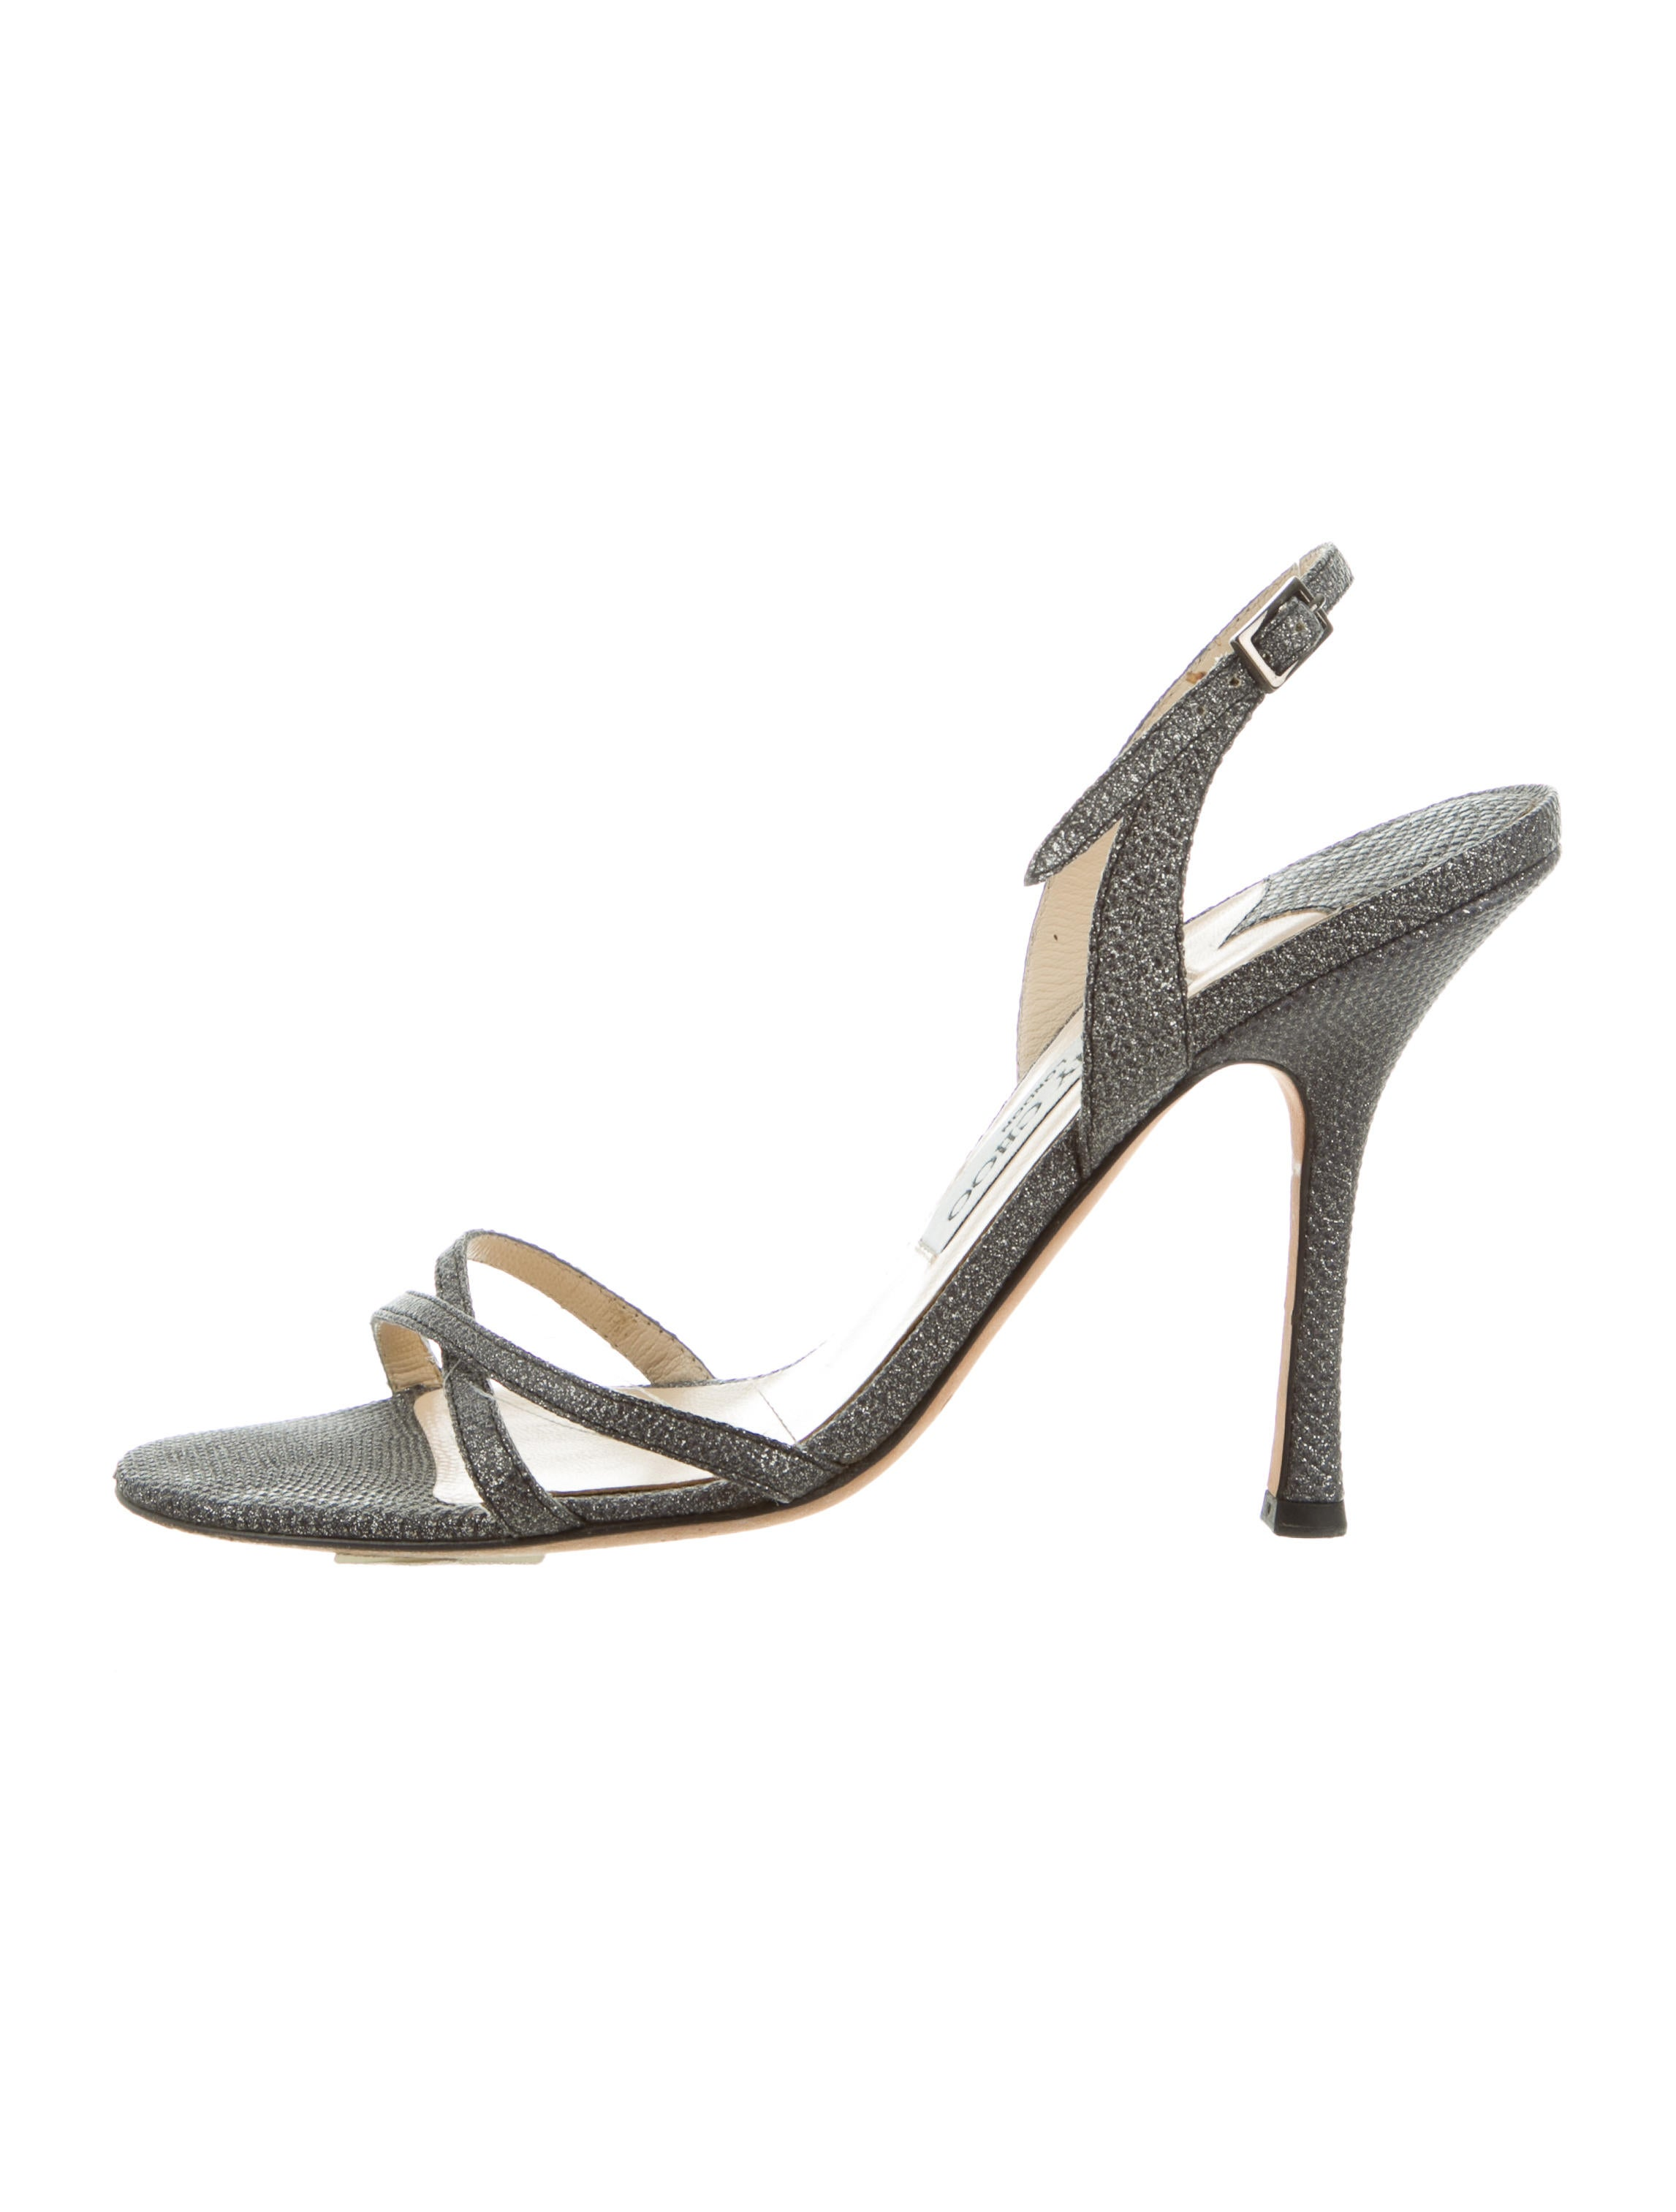 buy cheap shop for Jimmy Choo Metallic Karung Sandals brand new unisex sale online sale best prices newest comfortable cheap price mBaSkV8